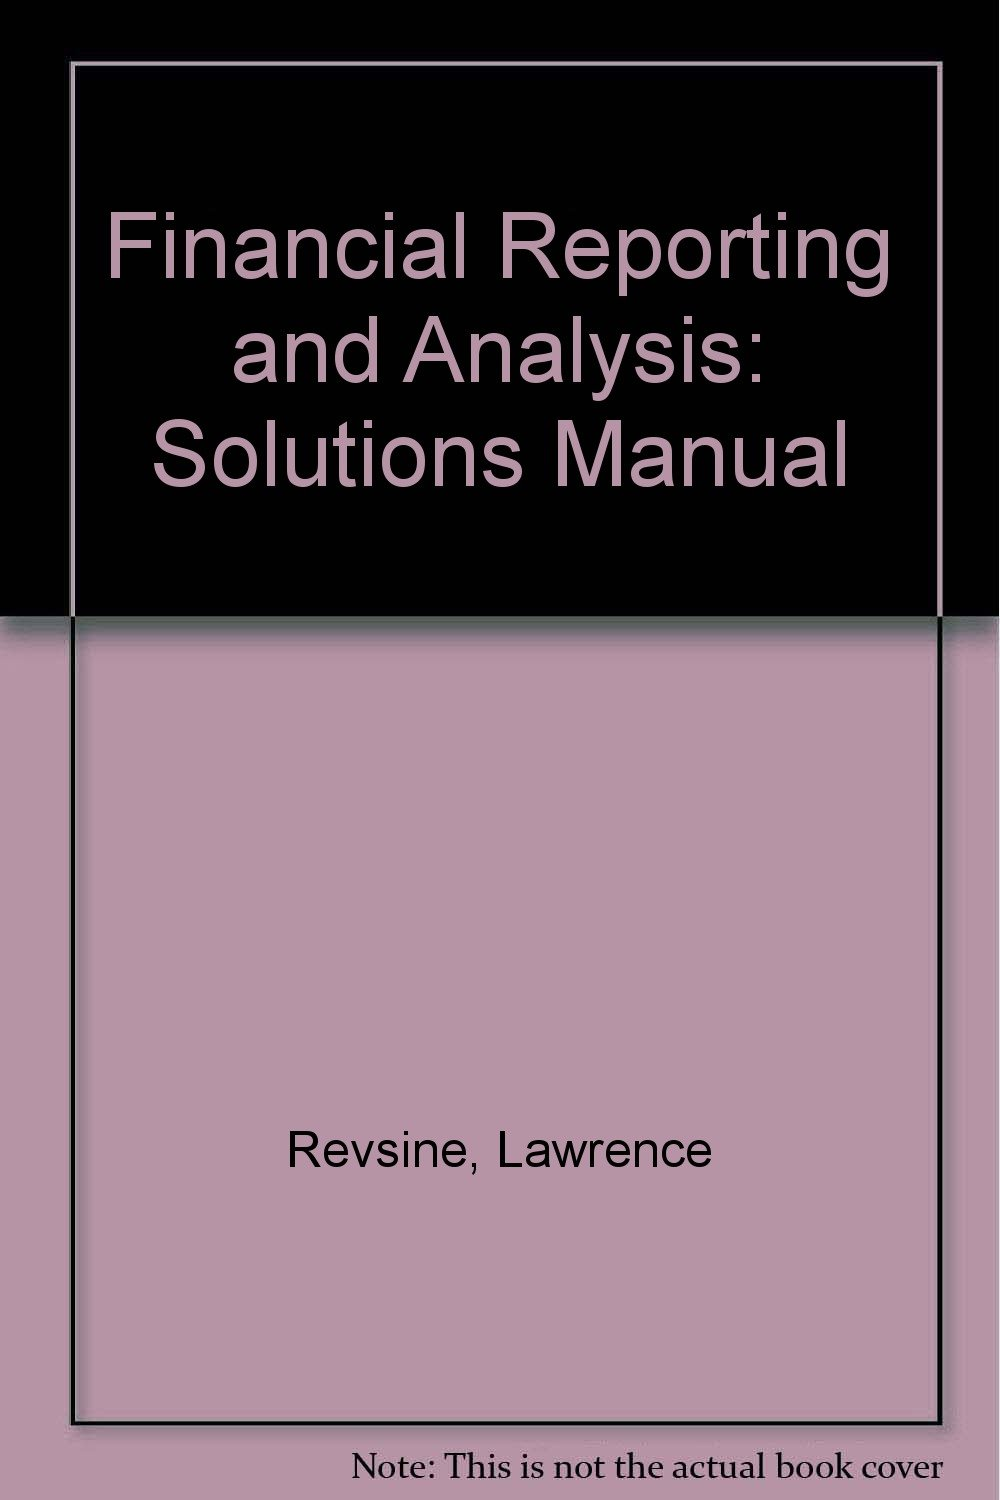 Financial Reporting and Analysis: Solutions Manual: Lawrence Revsine:  9780130341068: Amazon.com: Books